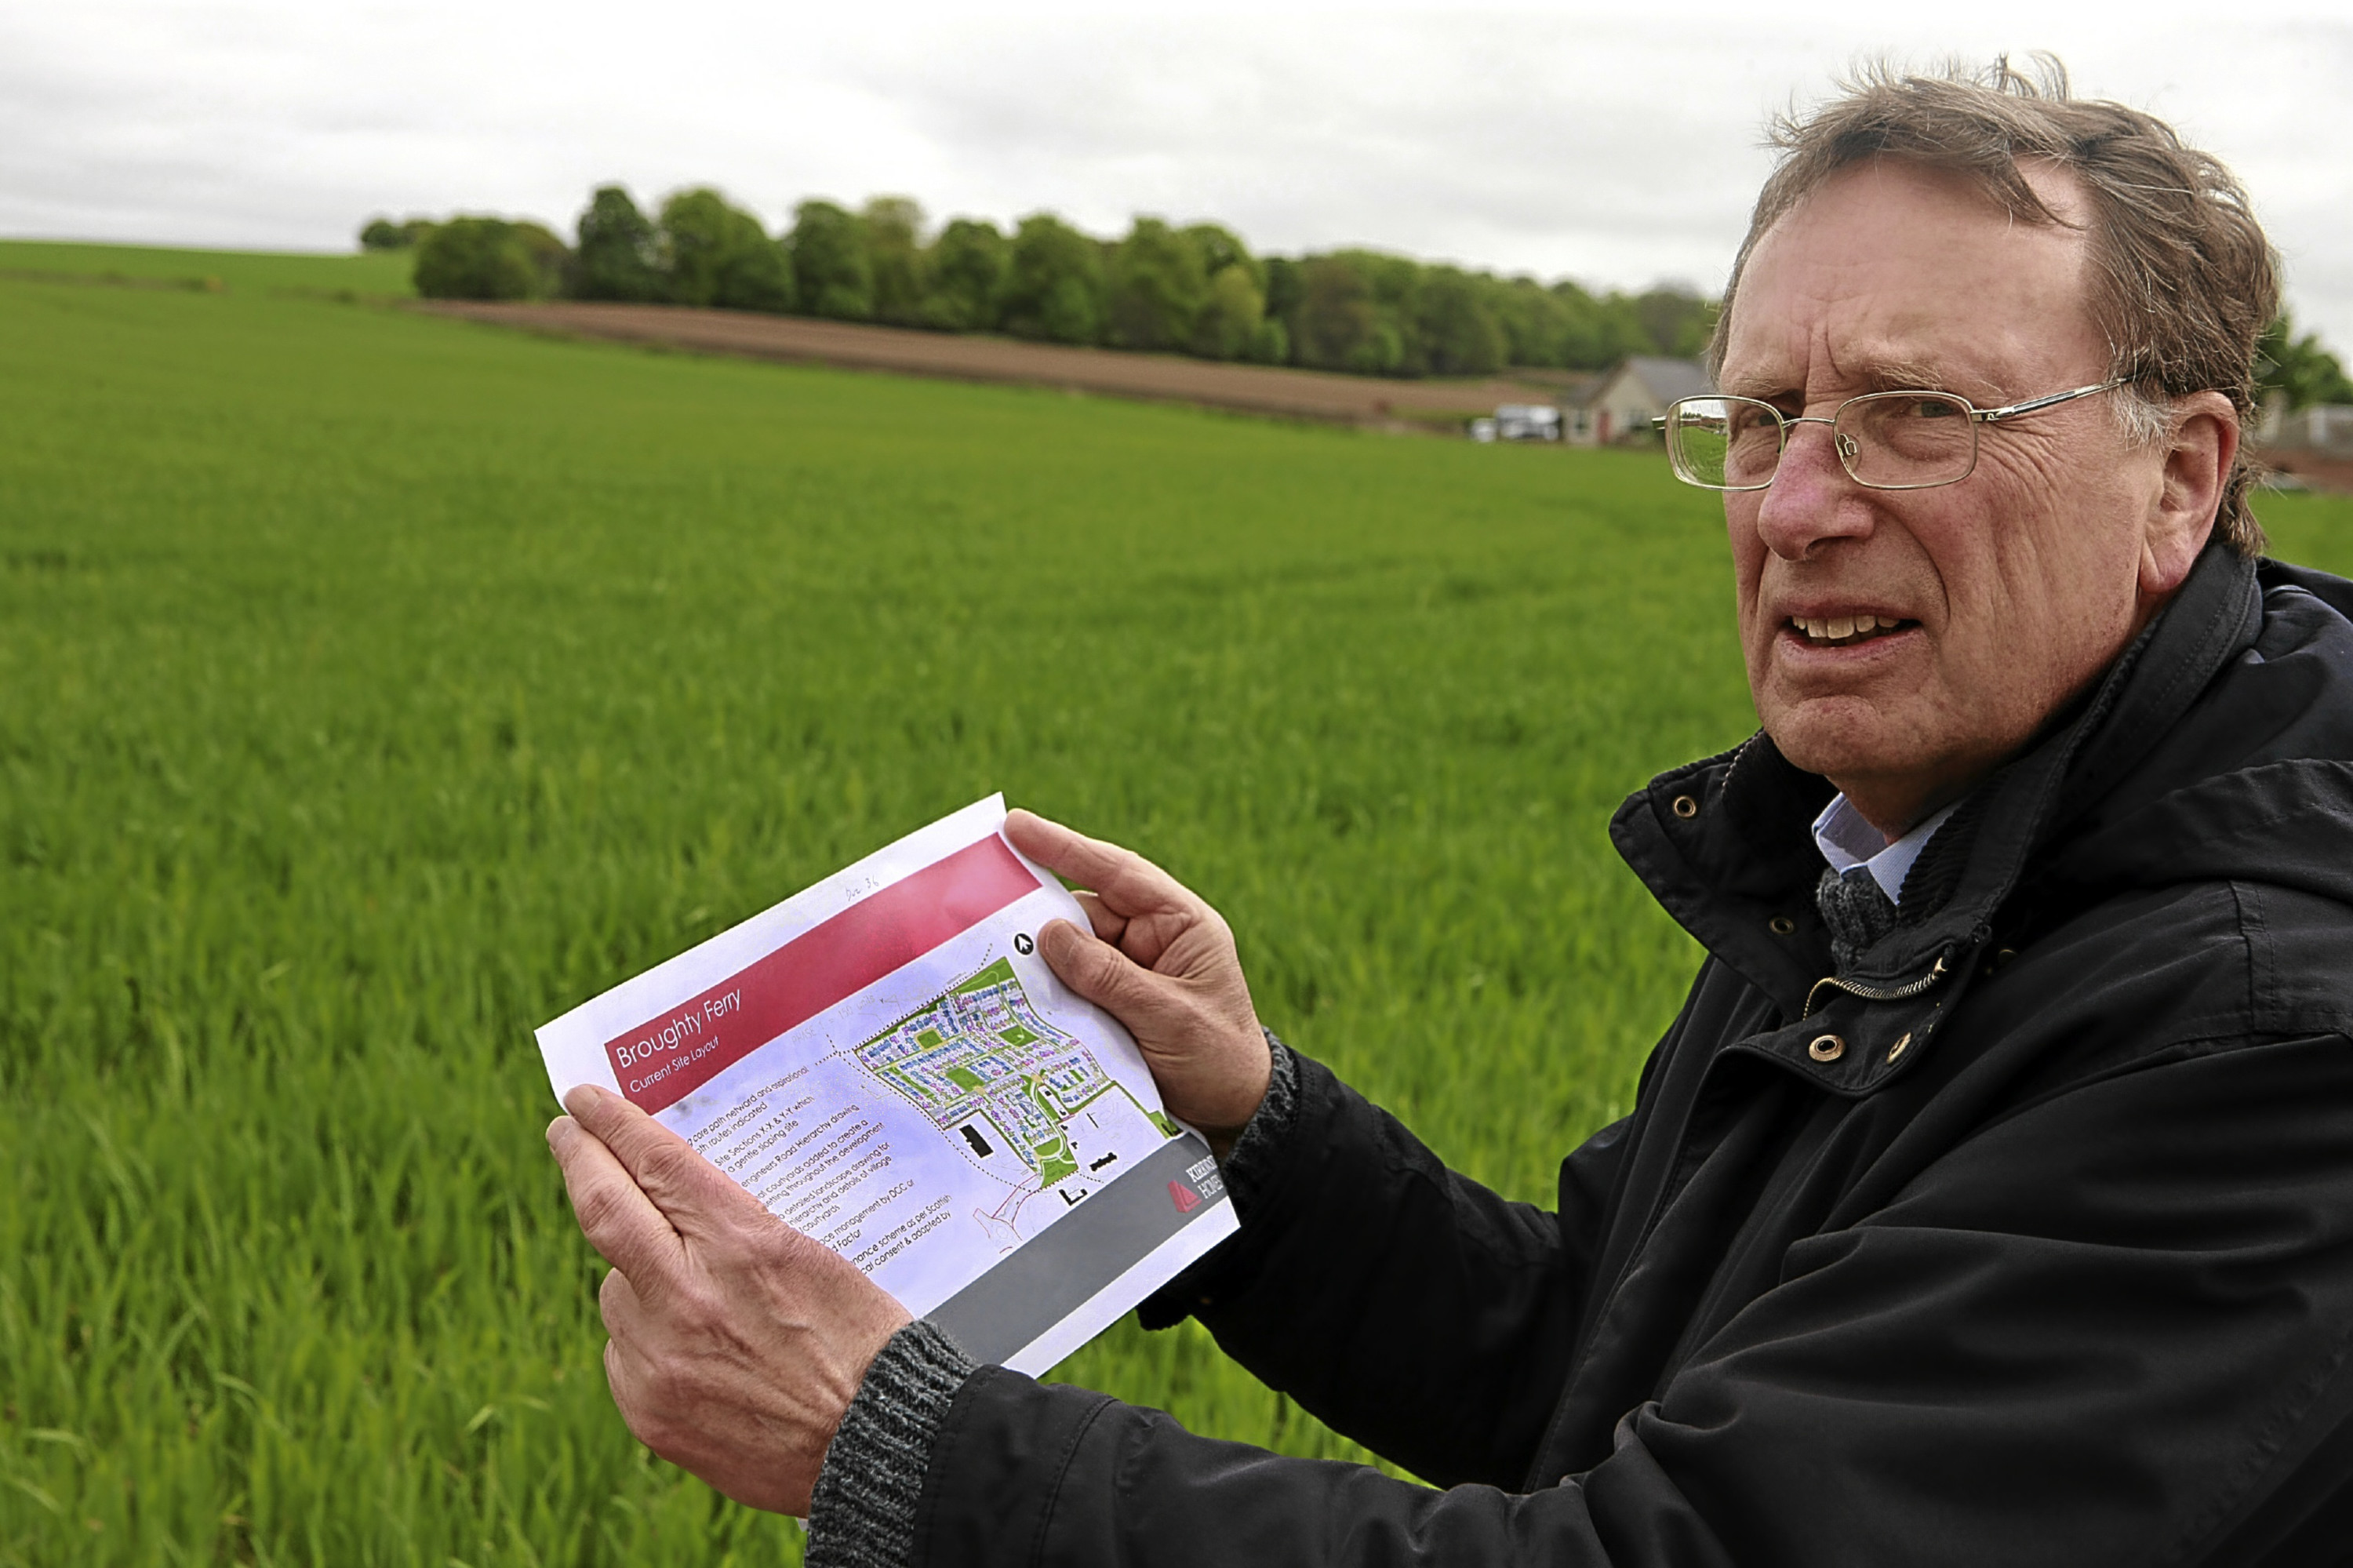 David Hewick, of Broughty Ferry Community Council, at the site with a copy of the development plan.